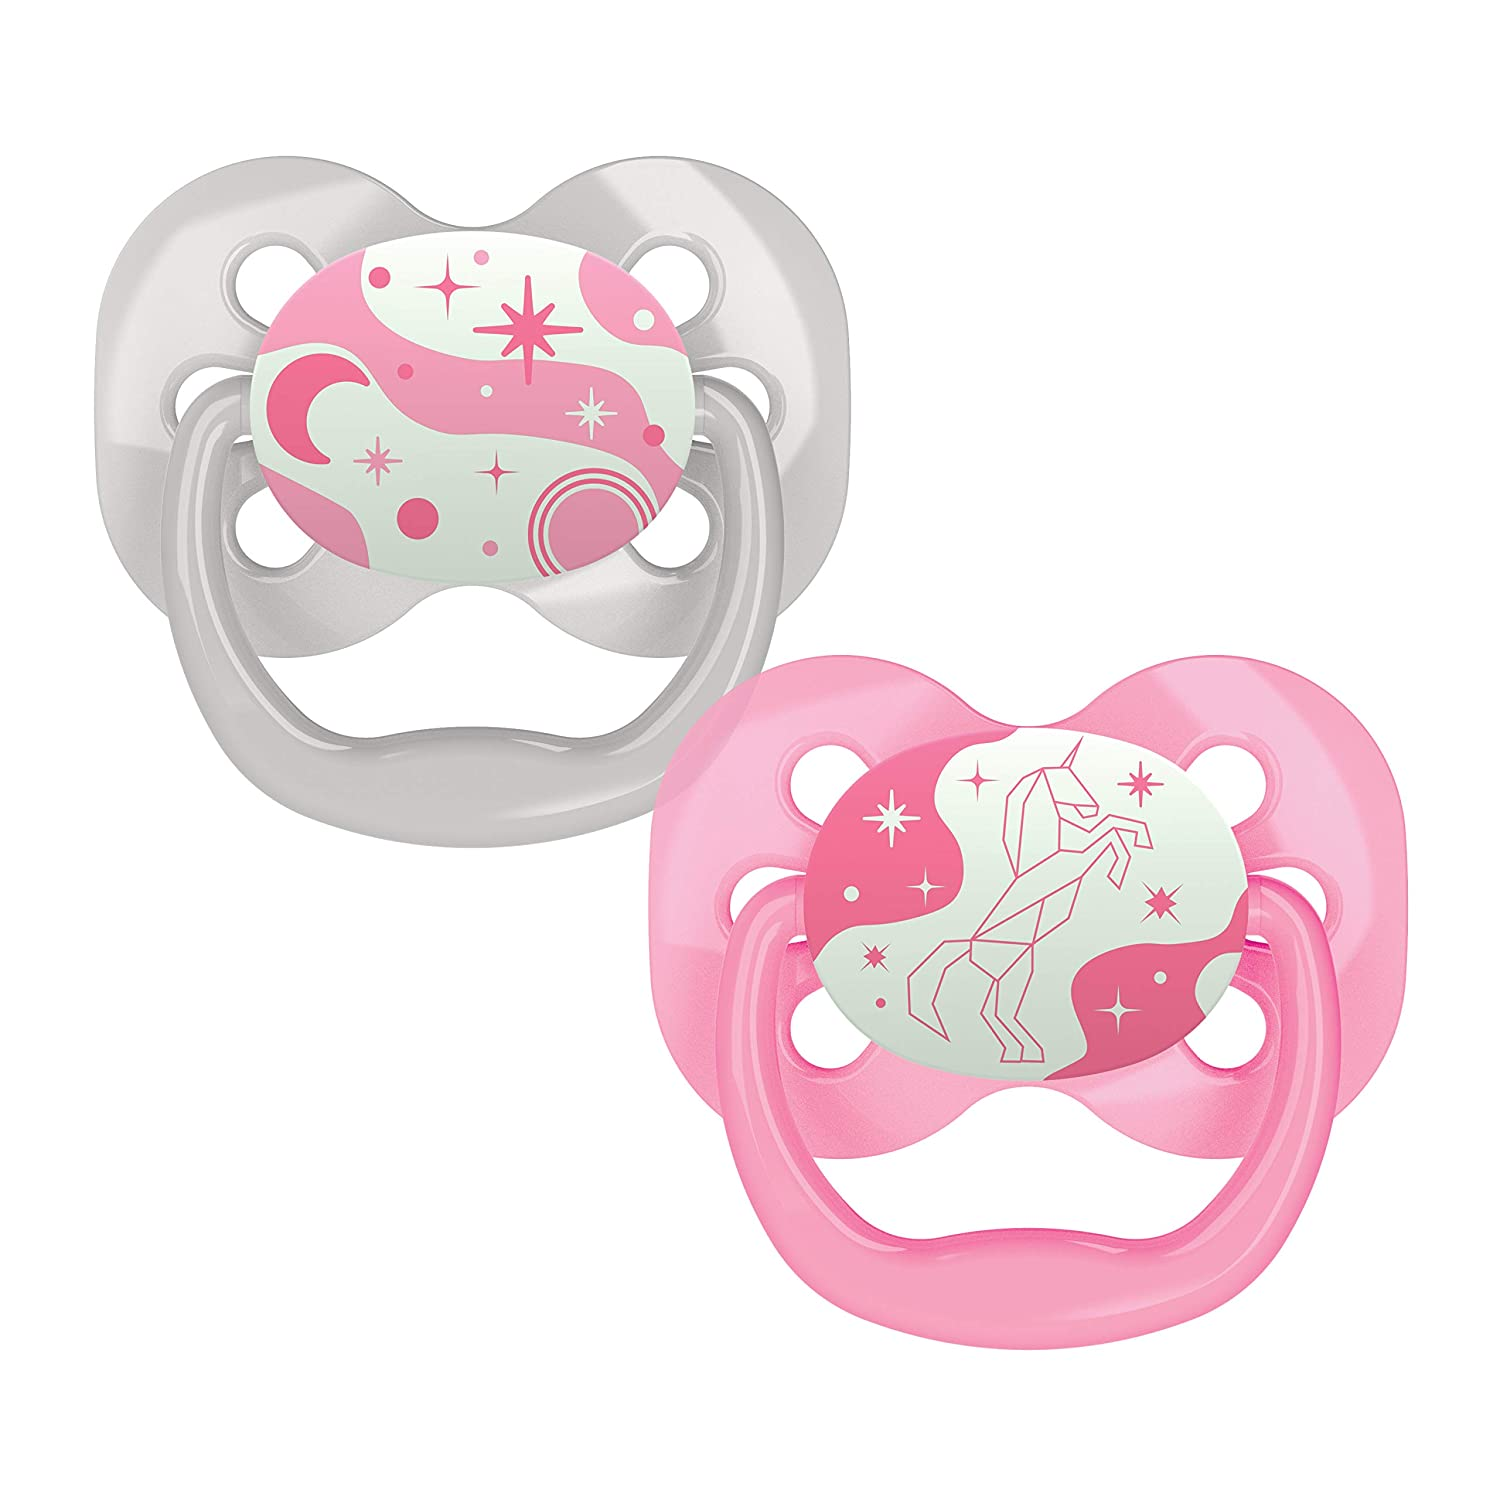 Dr. Low price Brown's Rapid rise Advantage Baby 0-6 Glow-in-The-Dark Mont Pacifiers